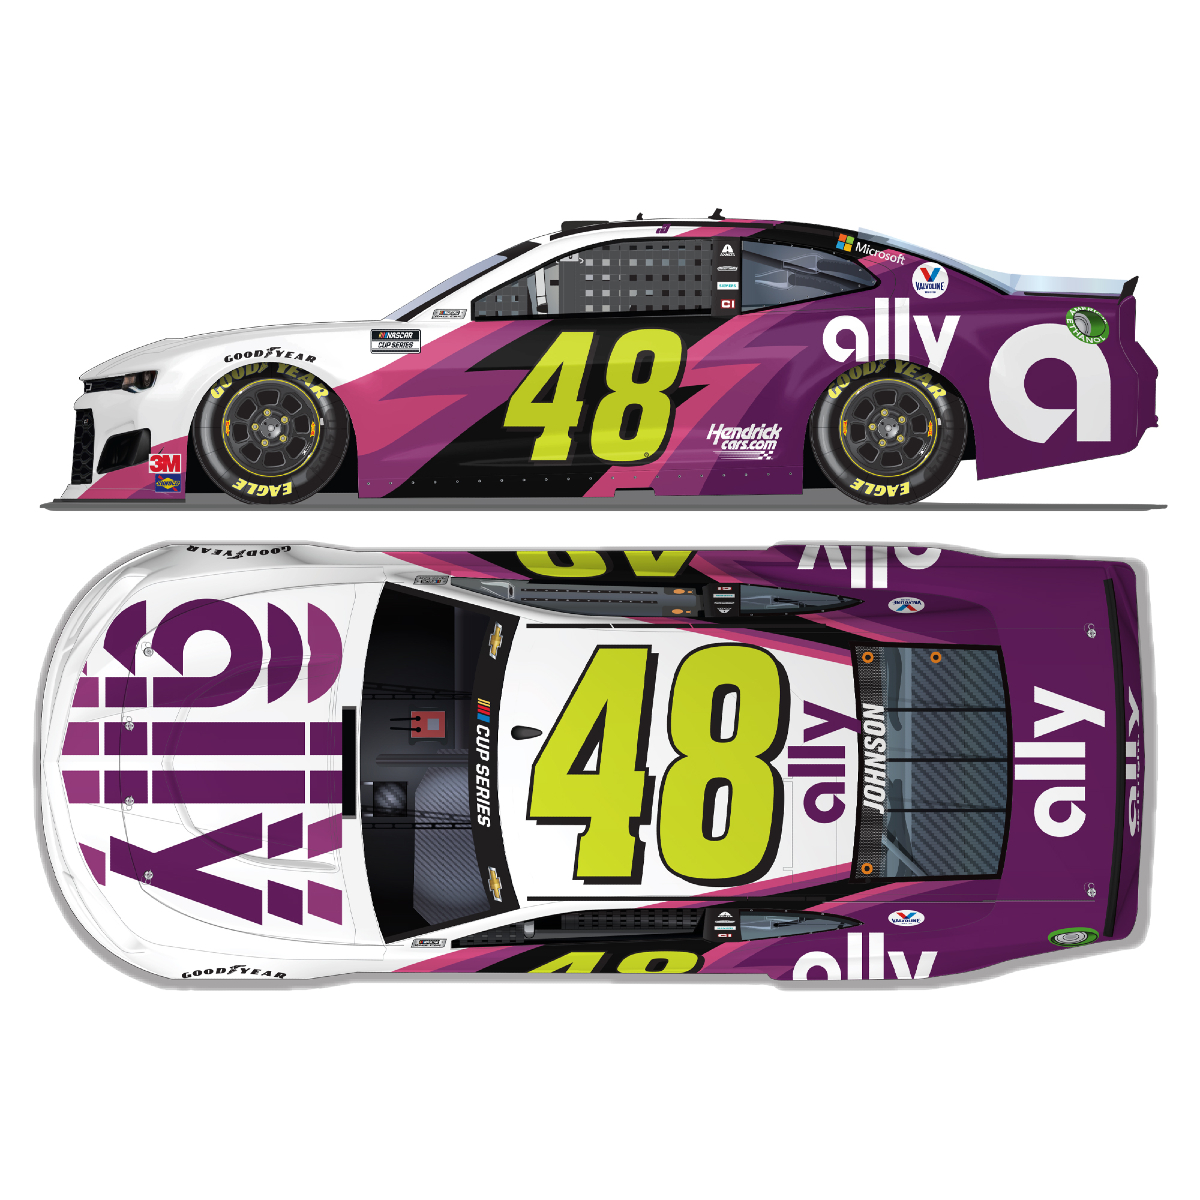 Jimmie Johnson No. 48 Ally Texas NASCAR Cup Series HO 1:24 - Die Cast